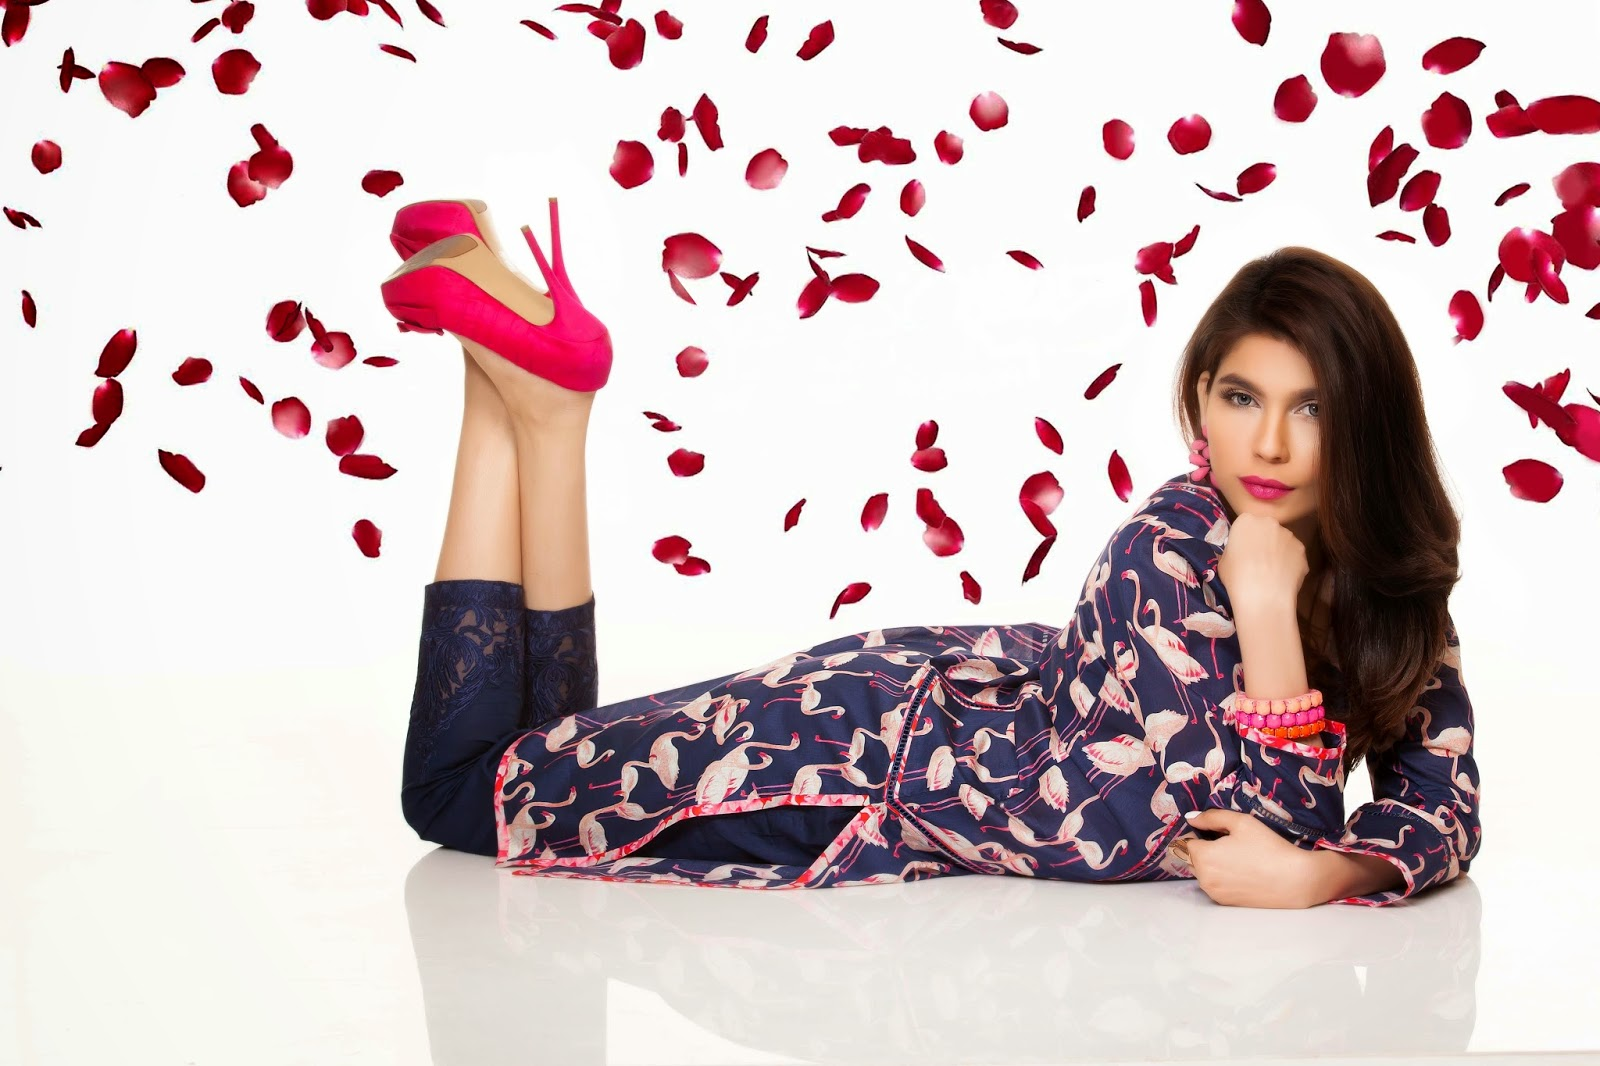 amna babar for sapphire's valentine's collection